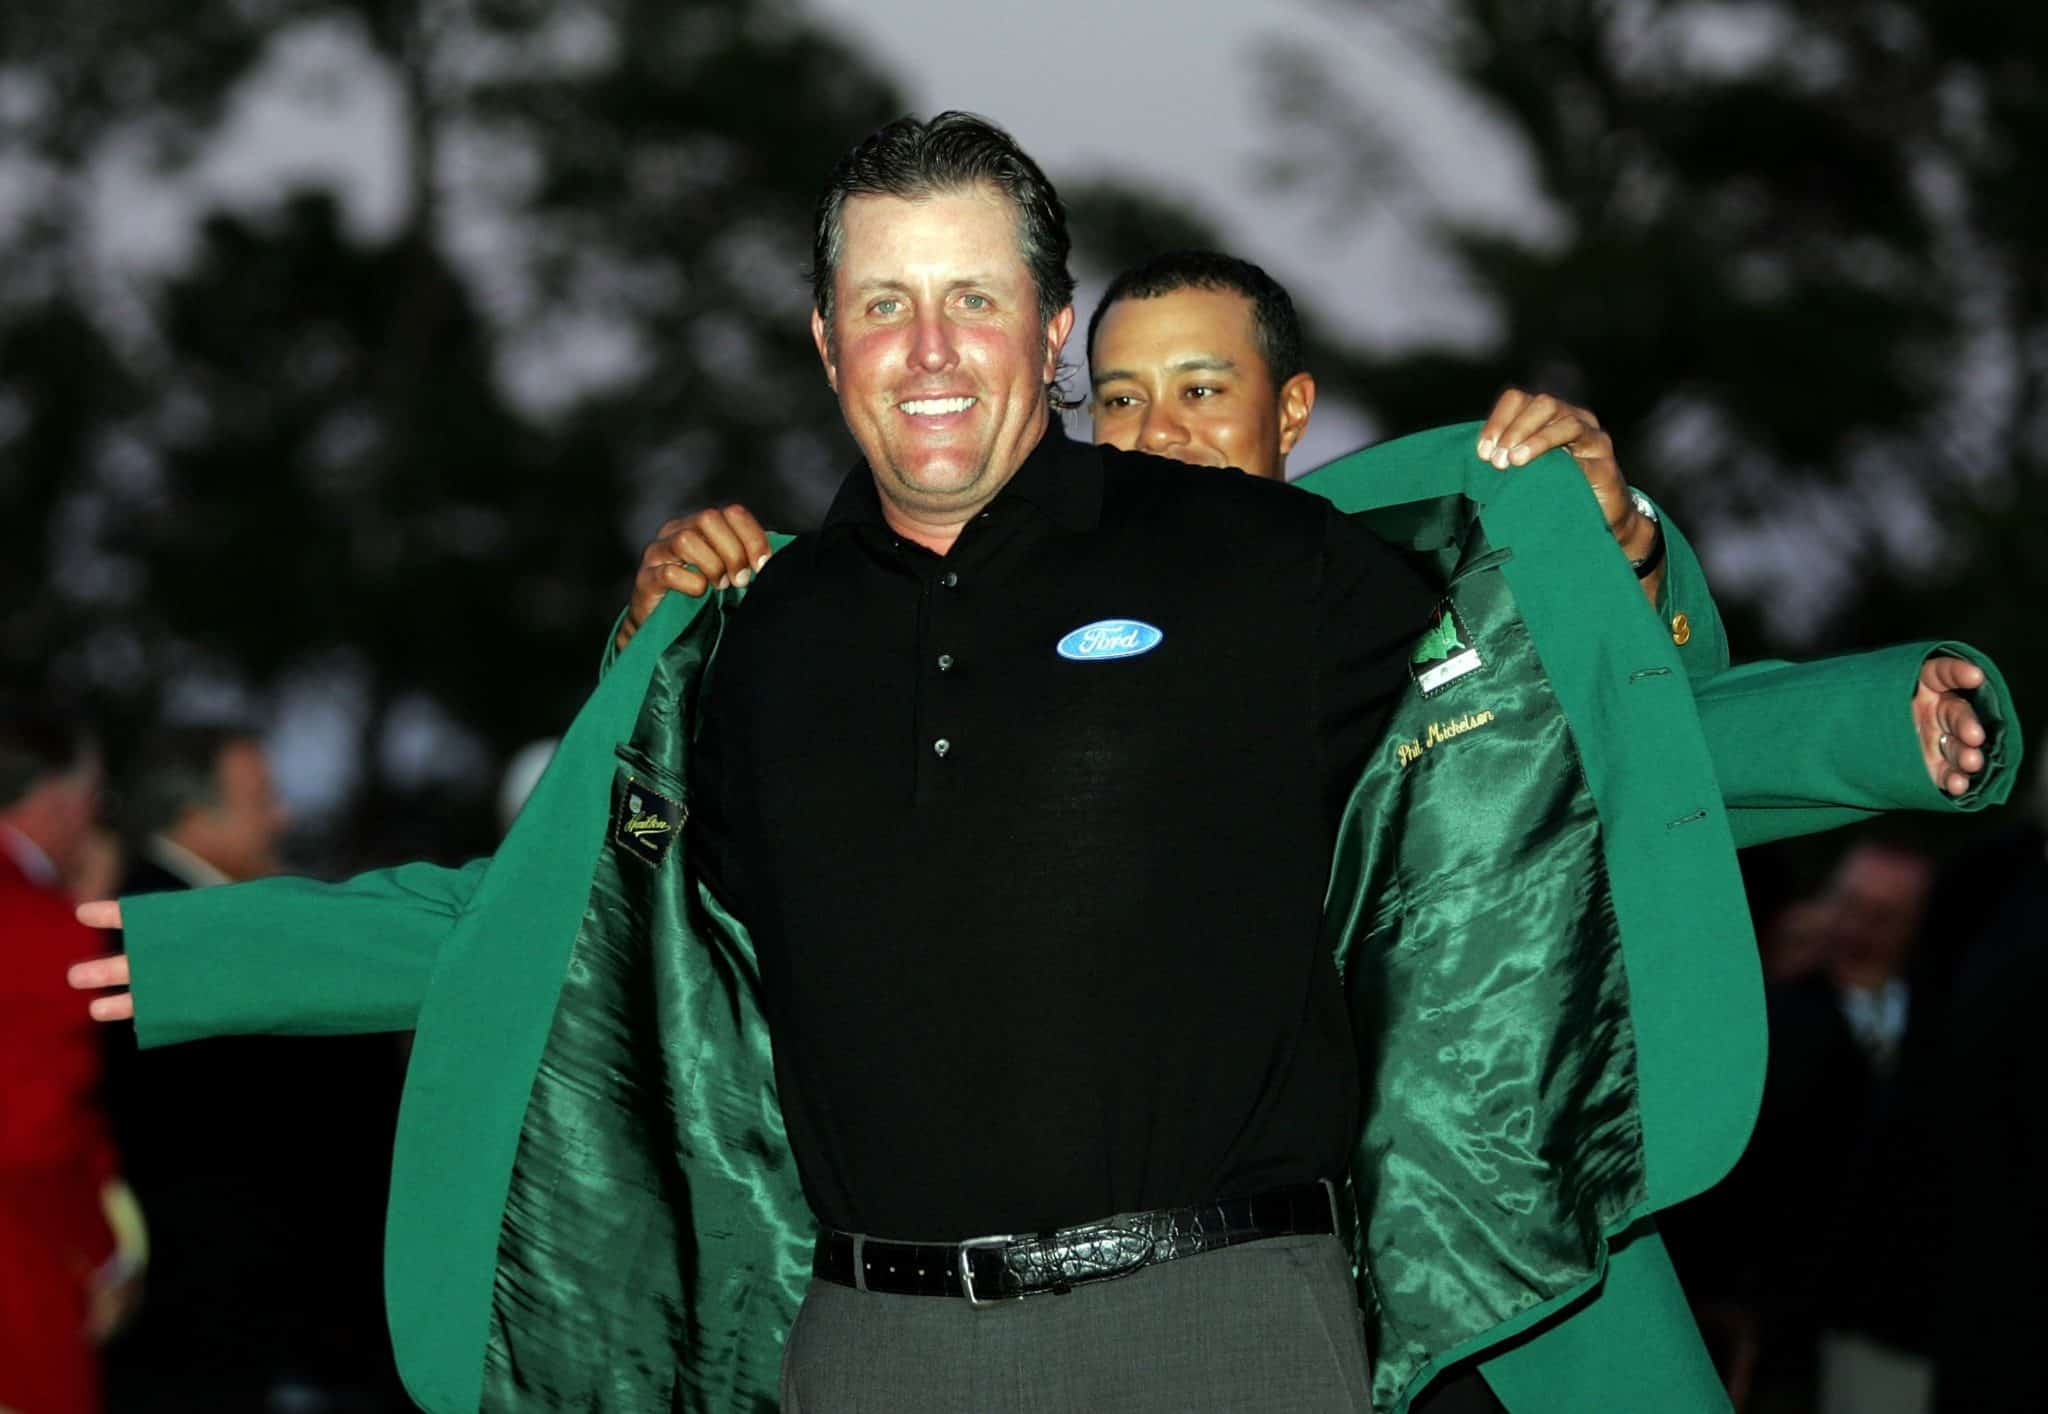 Phil Mickelson recieves the green jacket after winning the 2006 masters. Tiger Woods the 2005 winner is the person placing the green jacket on Mickelson